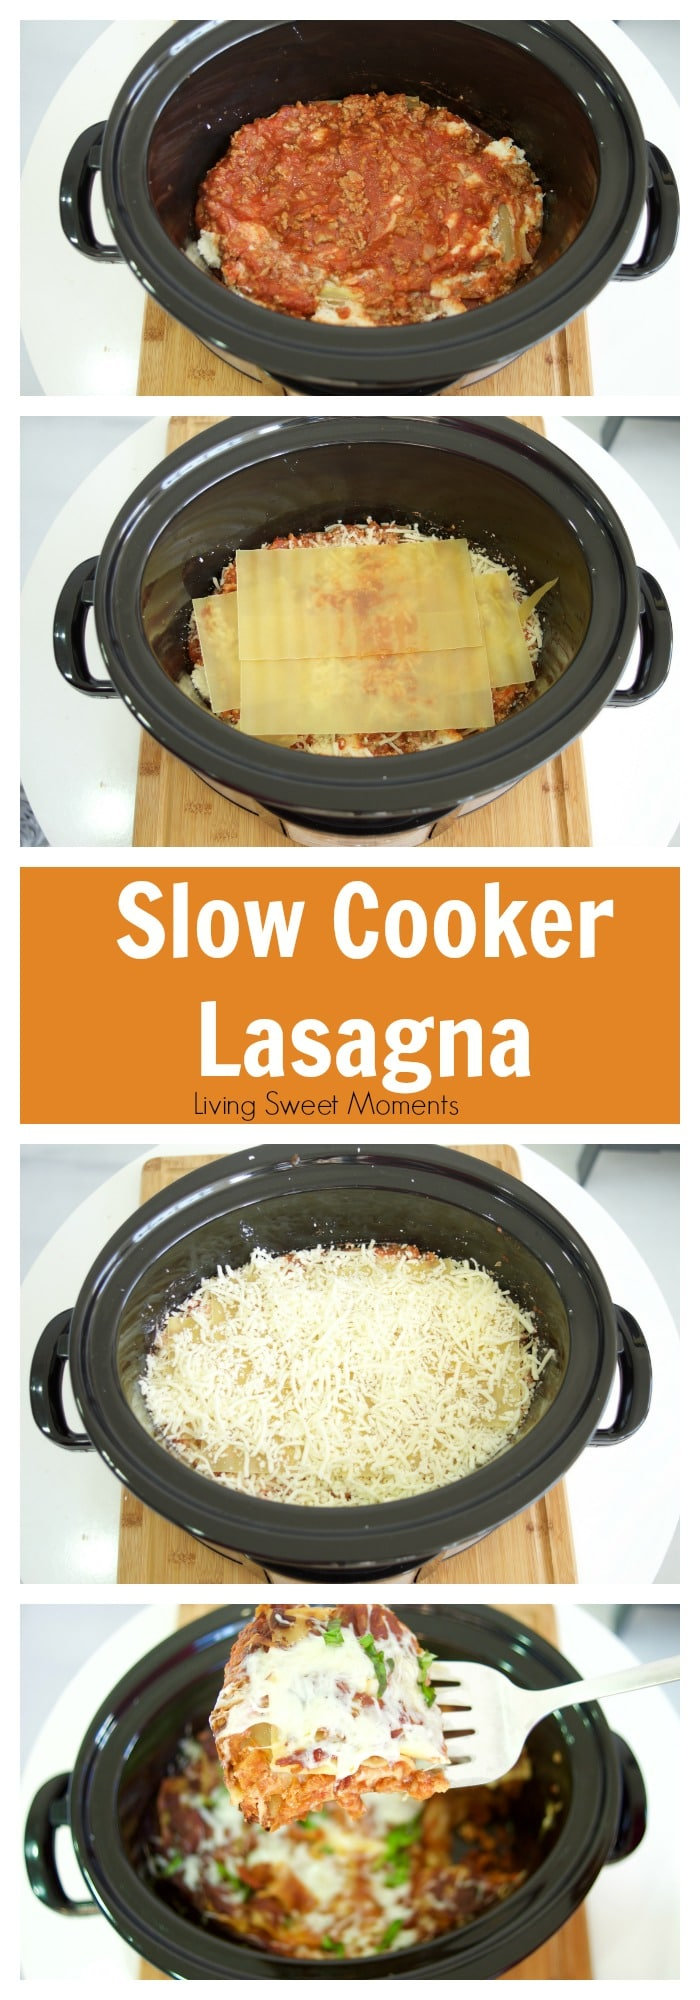 This easy to make and delicious Slow Cooker Lasagna Recipe is perfect for serving a crowd without much work. Take it to parties, cookouts and potlucks. Yum!